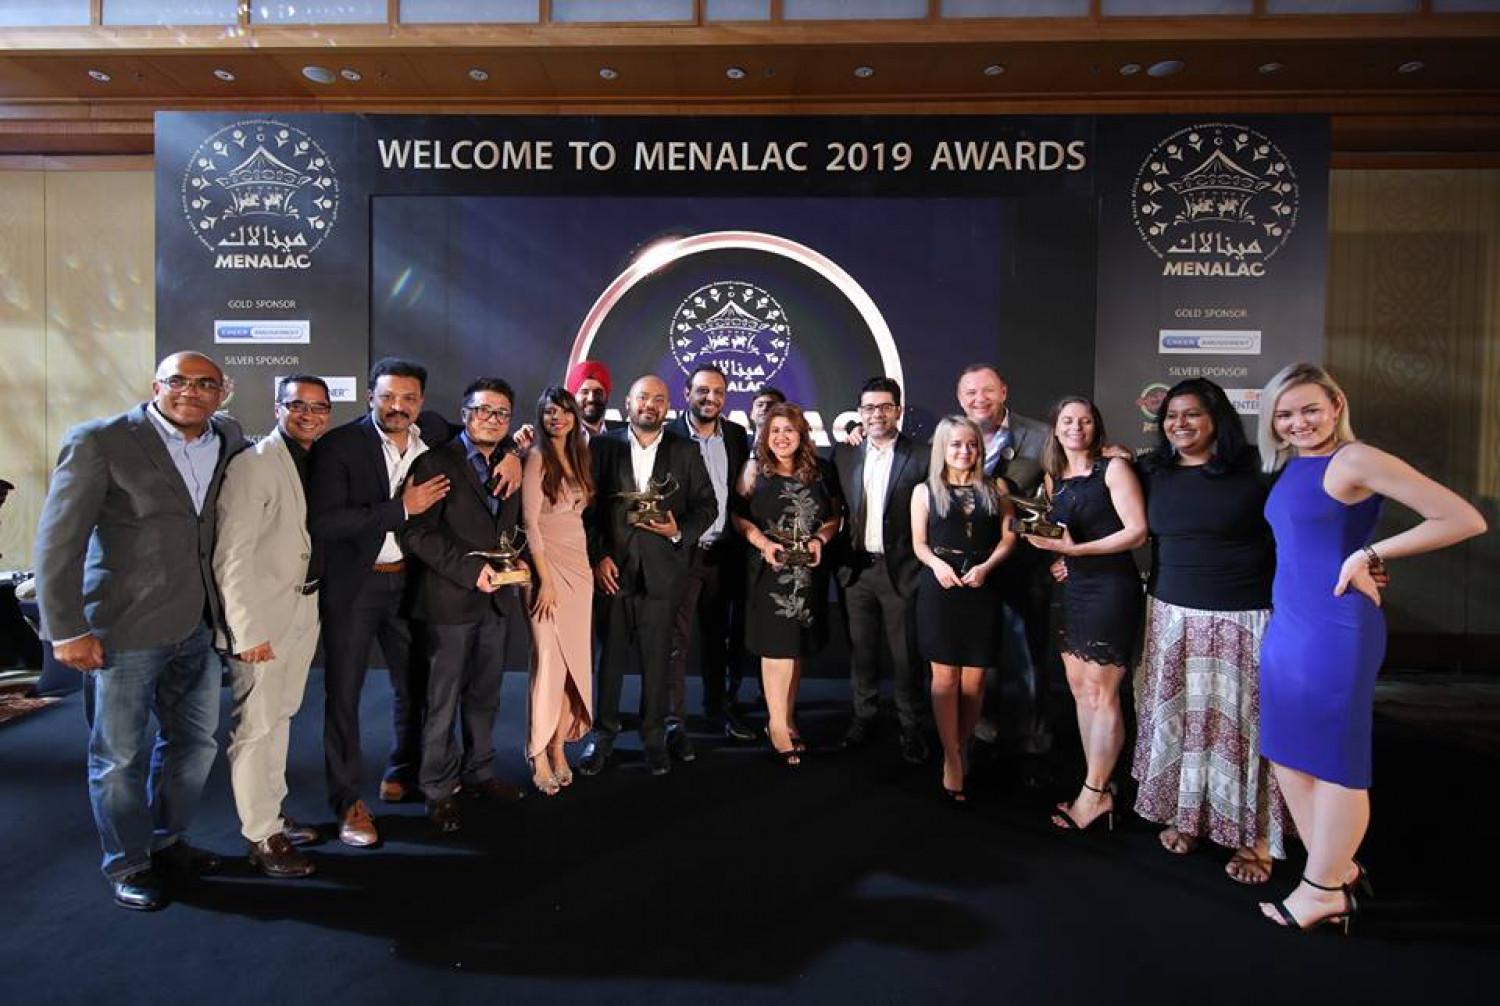 Fun City has won 2 awards at the MENALAC Awards Gala 2019. Infographic